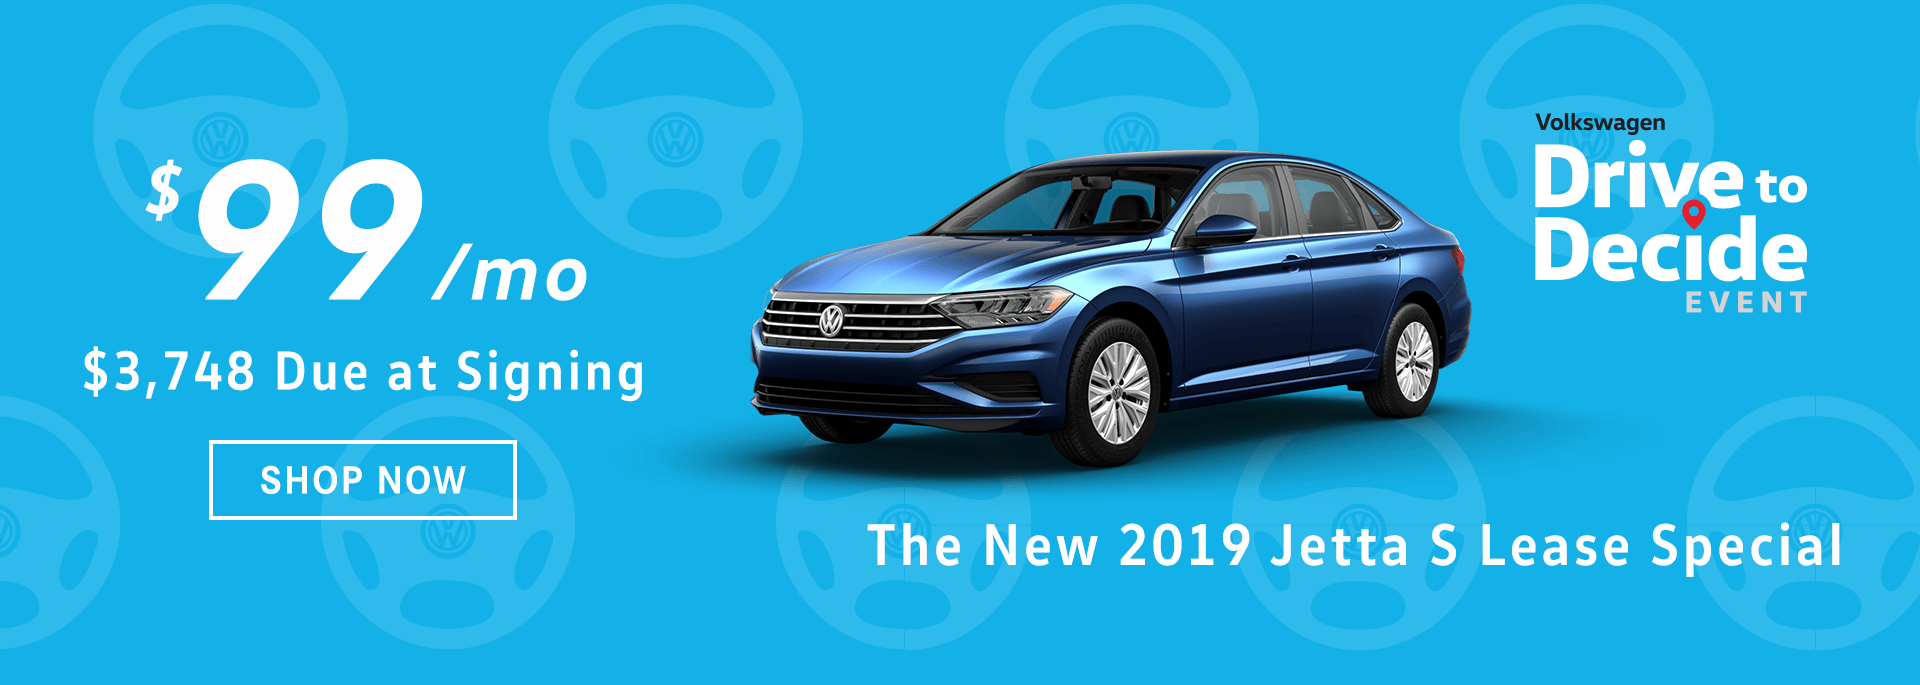 2019 Jetta S Lease Special